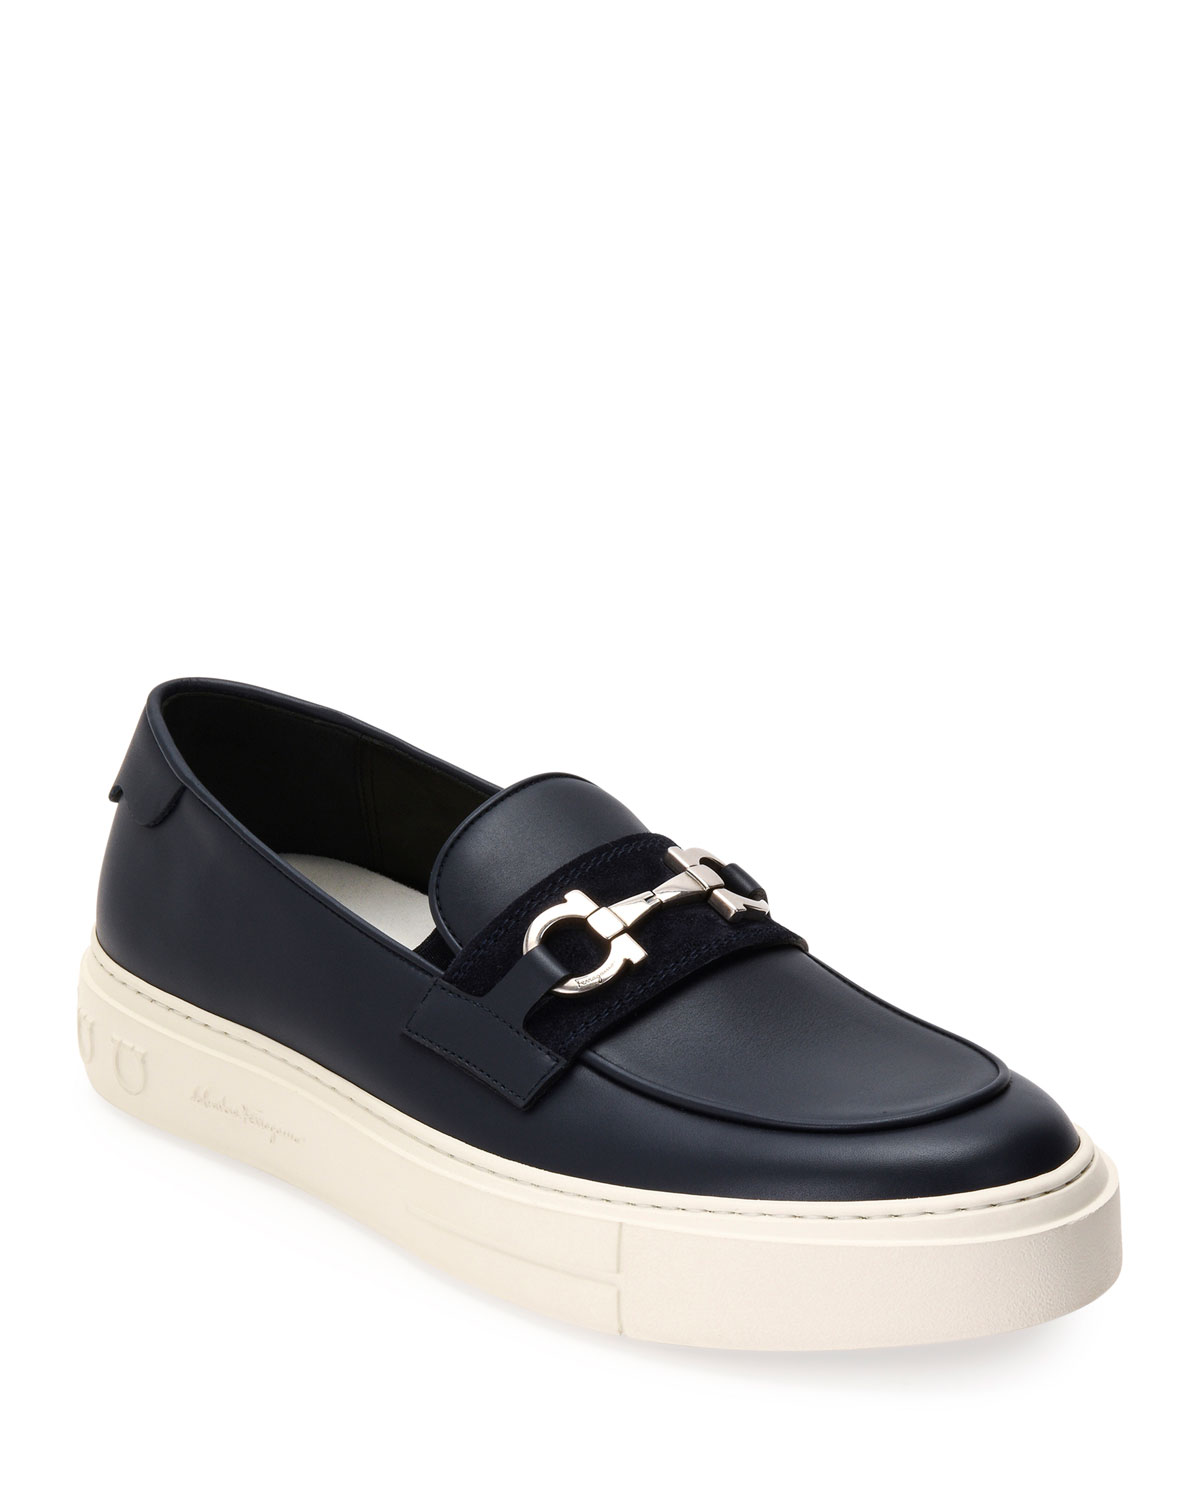 Salvatore Ferragamo Loafers MEN'S SATURDAY GANCINI-BIT SNEAKER LOAFERS